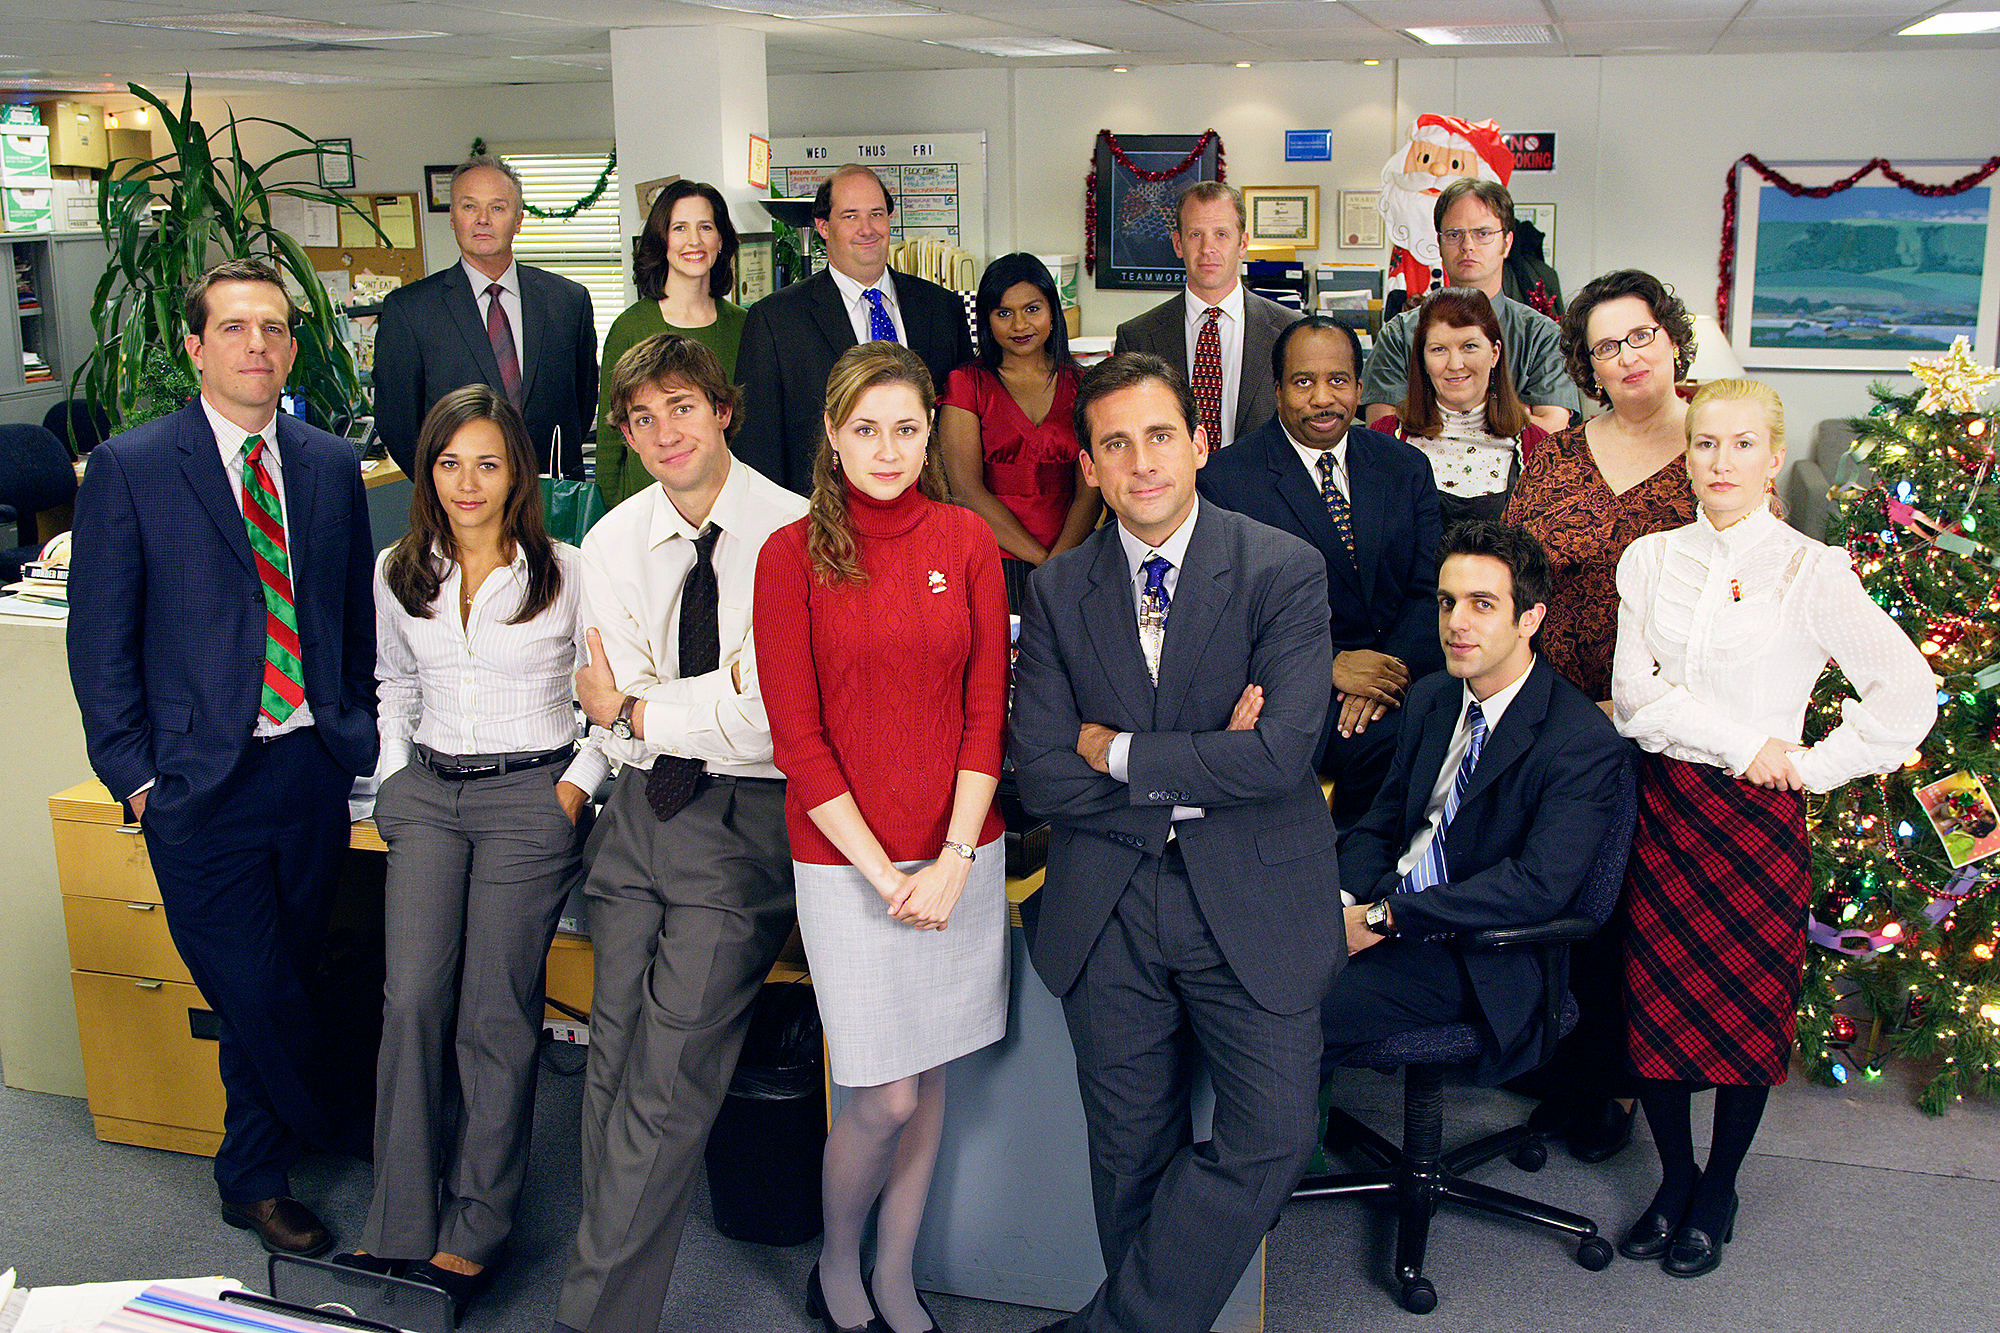 The Office Revival Reportedly in the Works